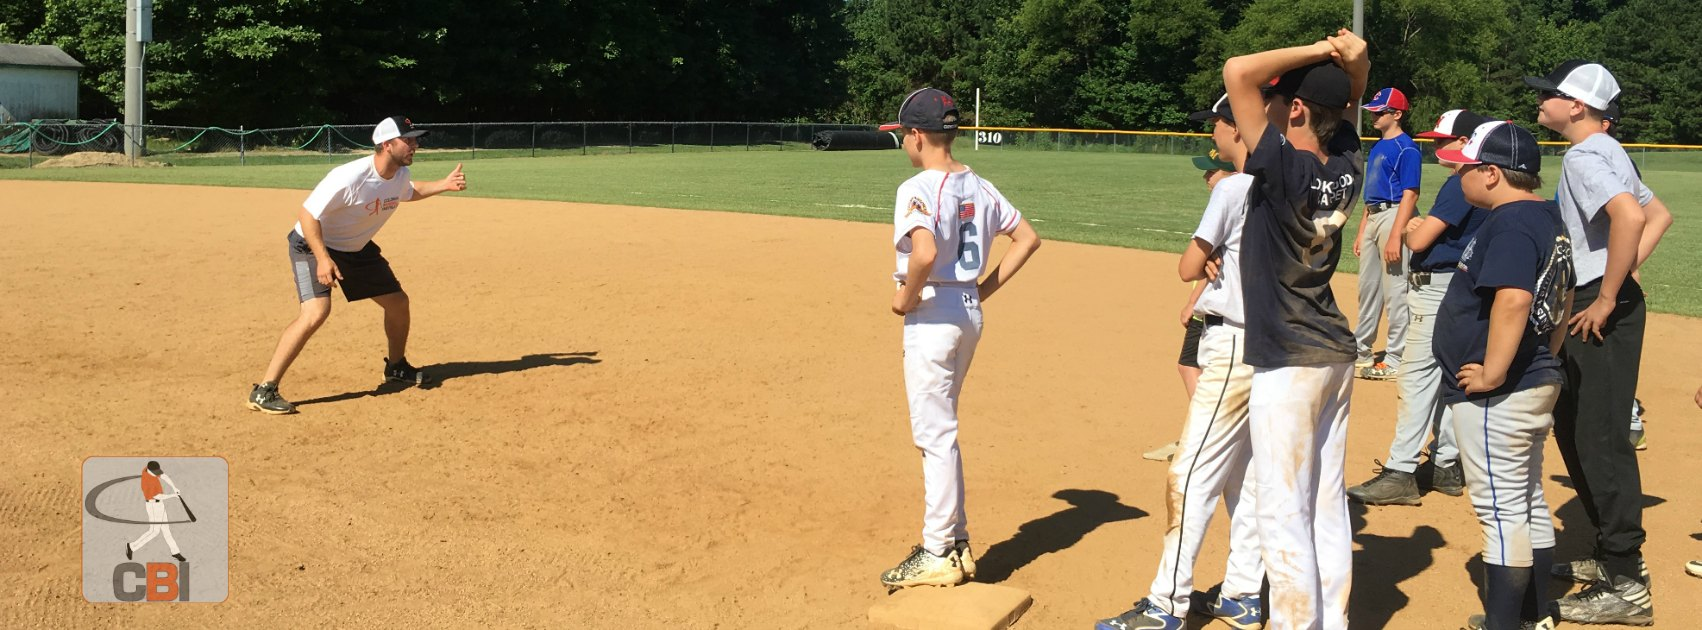 Summer baseball camps in richmond va colonial baseball instruction cbi travels to richmond and joins coach cassady at benedictine college prep for a 12 day camp august 7th 10th 830am 1230pm 1betcityfo Choice Image